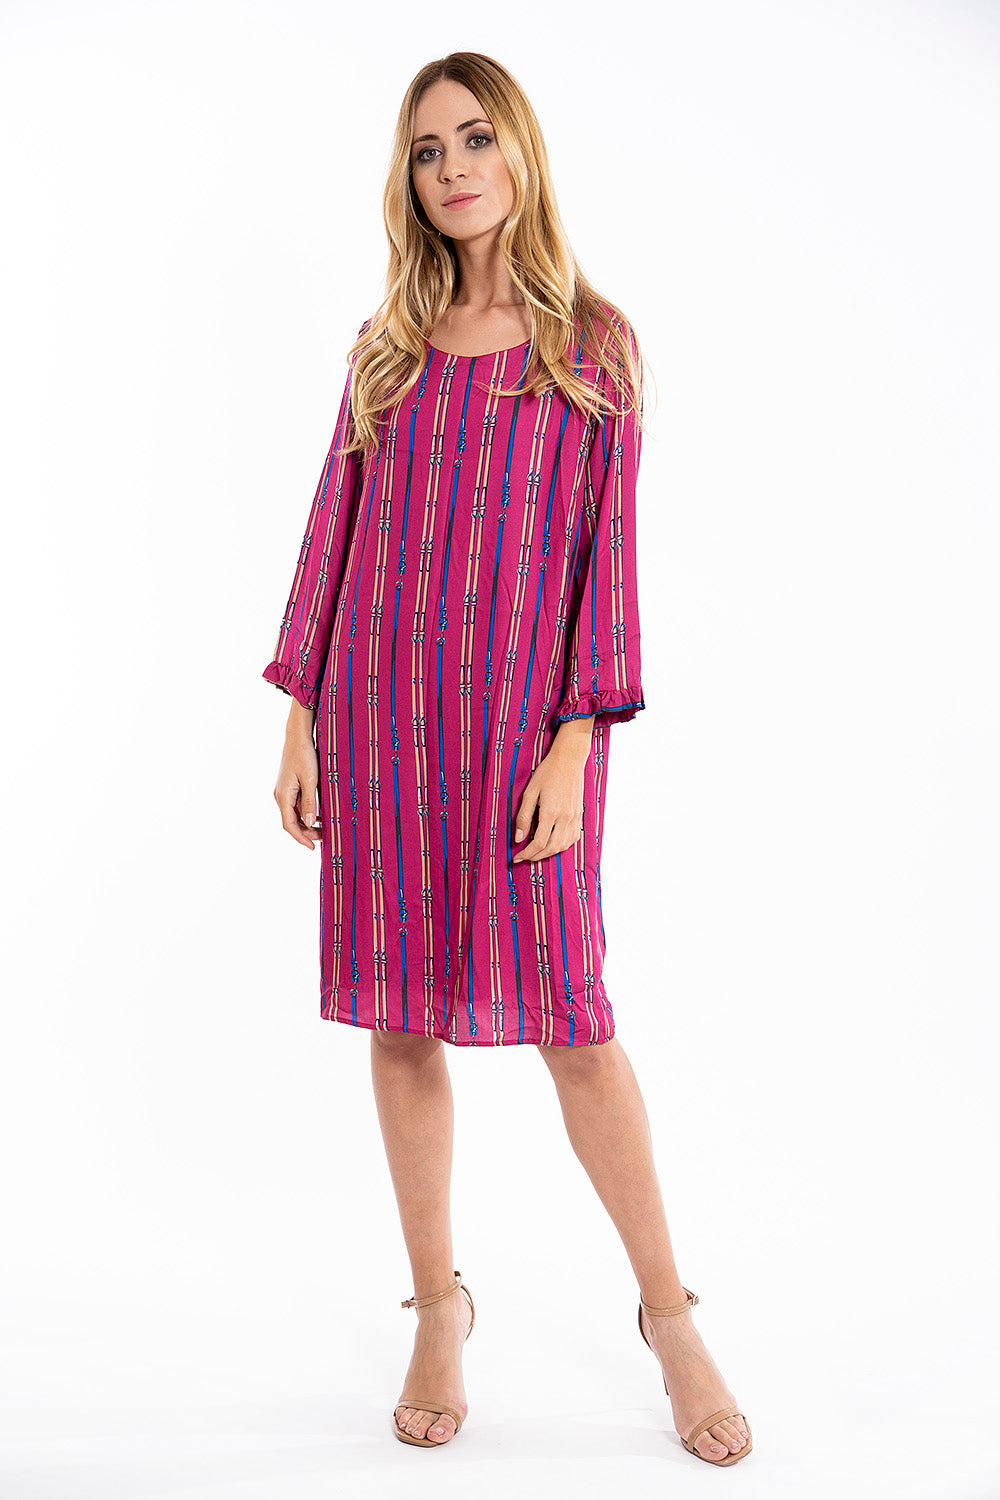 Malvin viscose midi dress with 3/4 sleeves